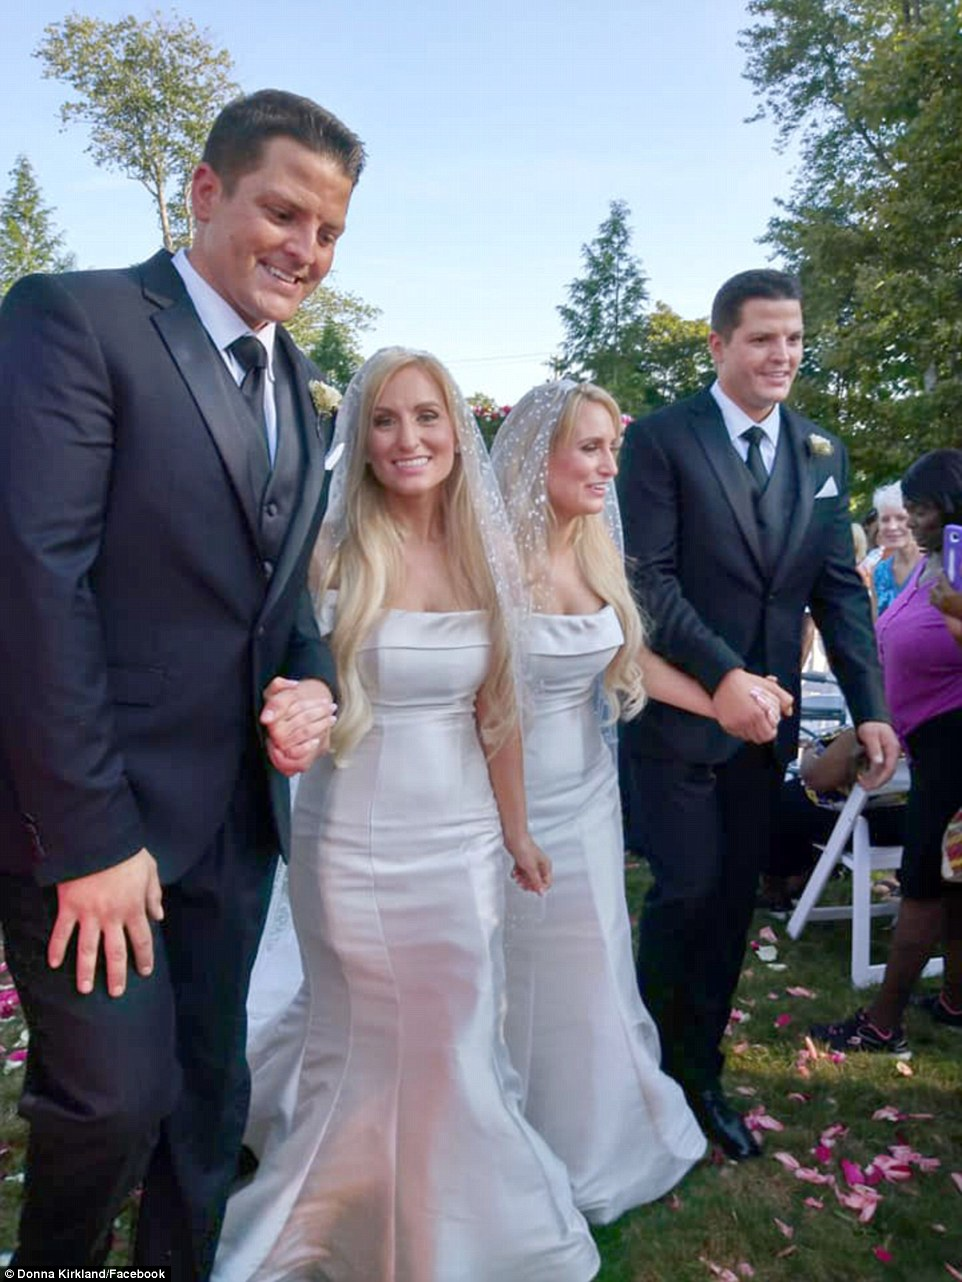 Identical twin sisters receive surprise joint proposals from identical twin brothers who they met at a twin festival